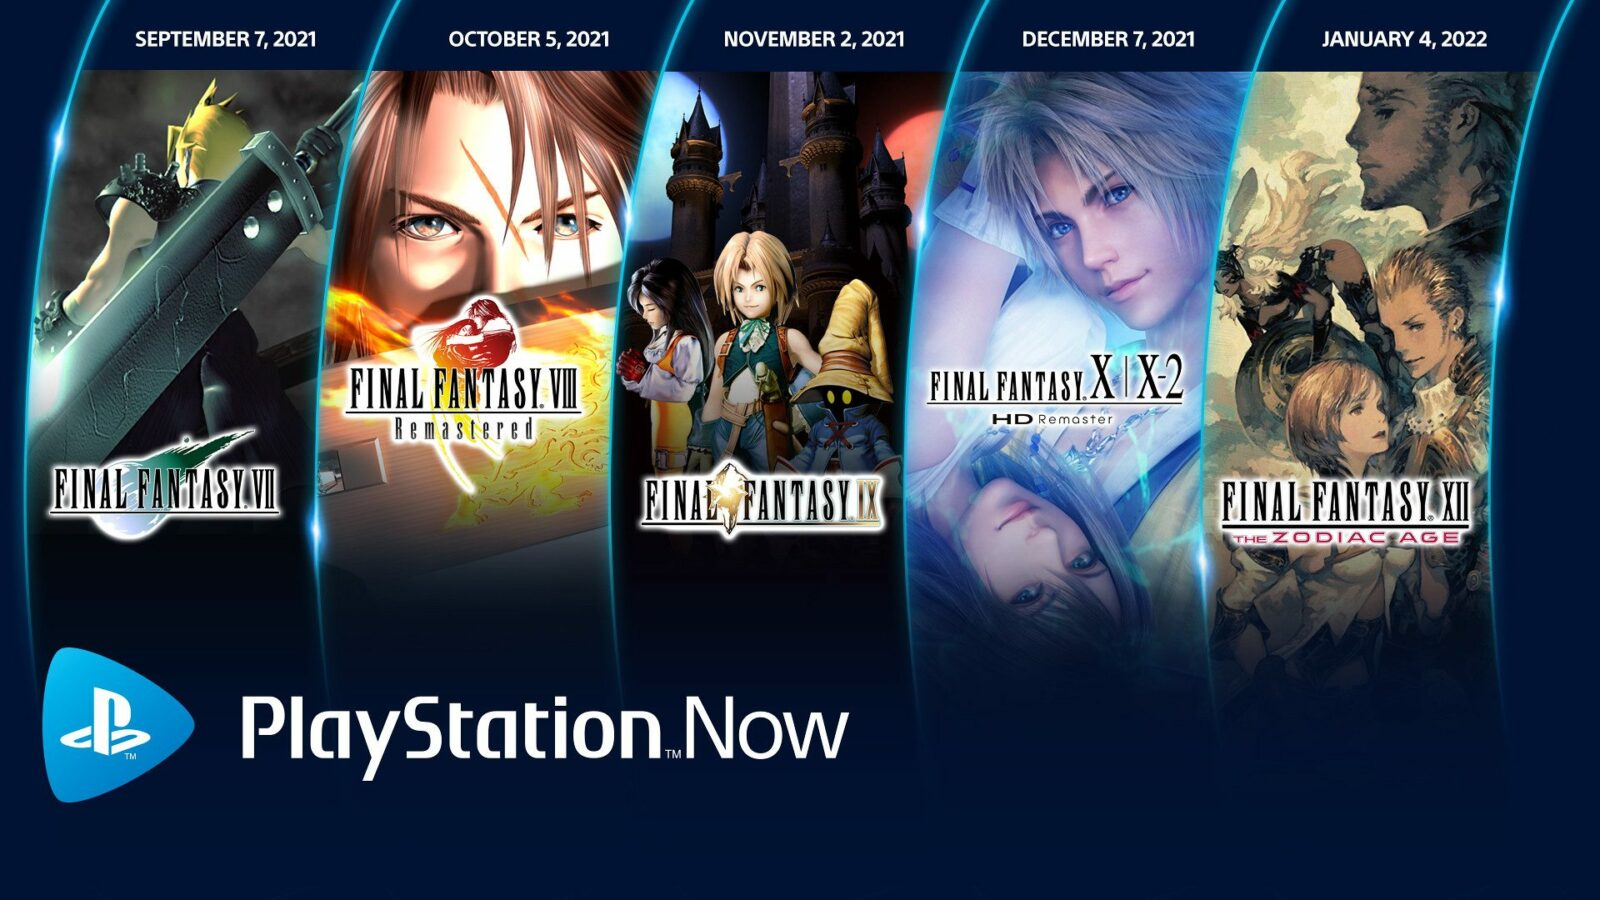 5 Final Fantasy games coming to PlayStation Now starting this month 1